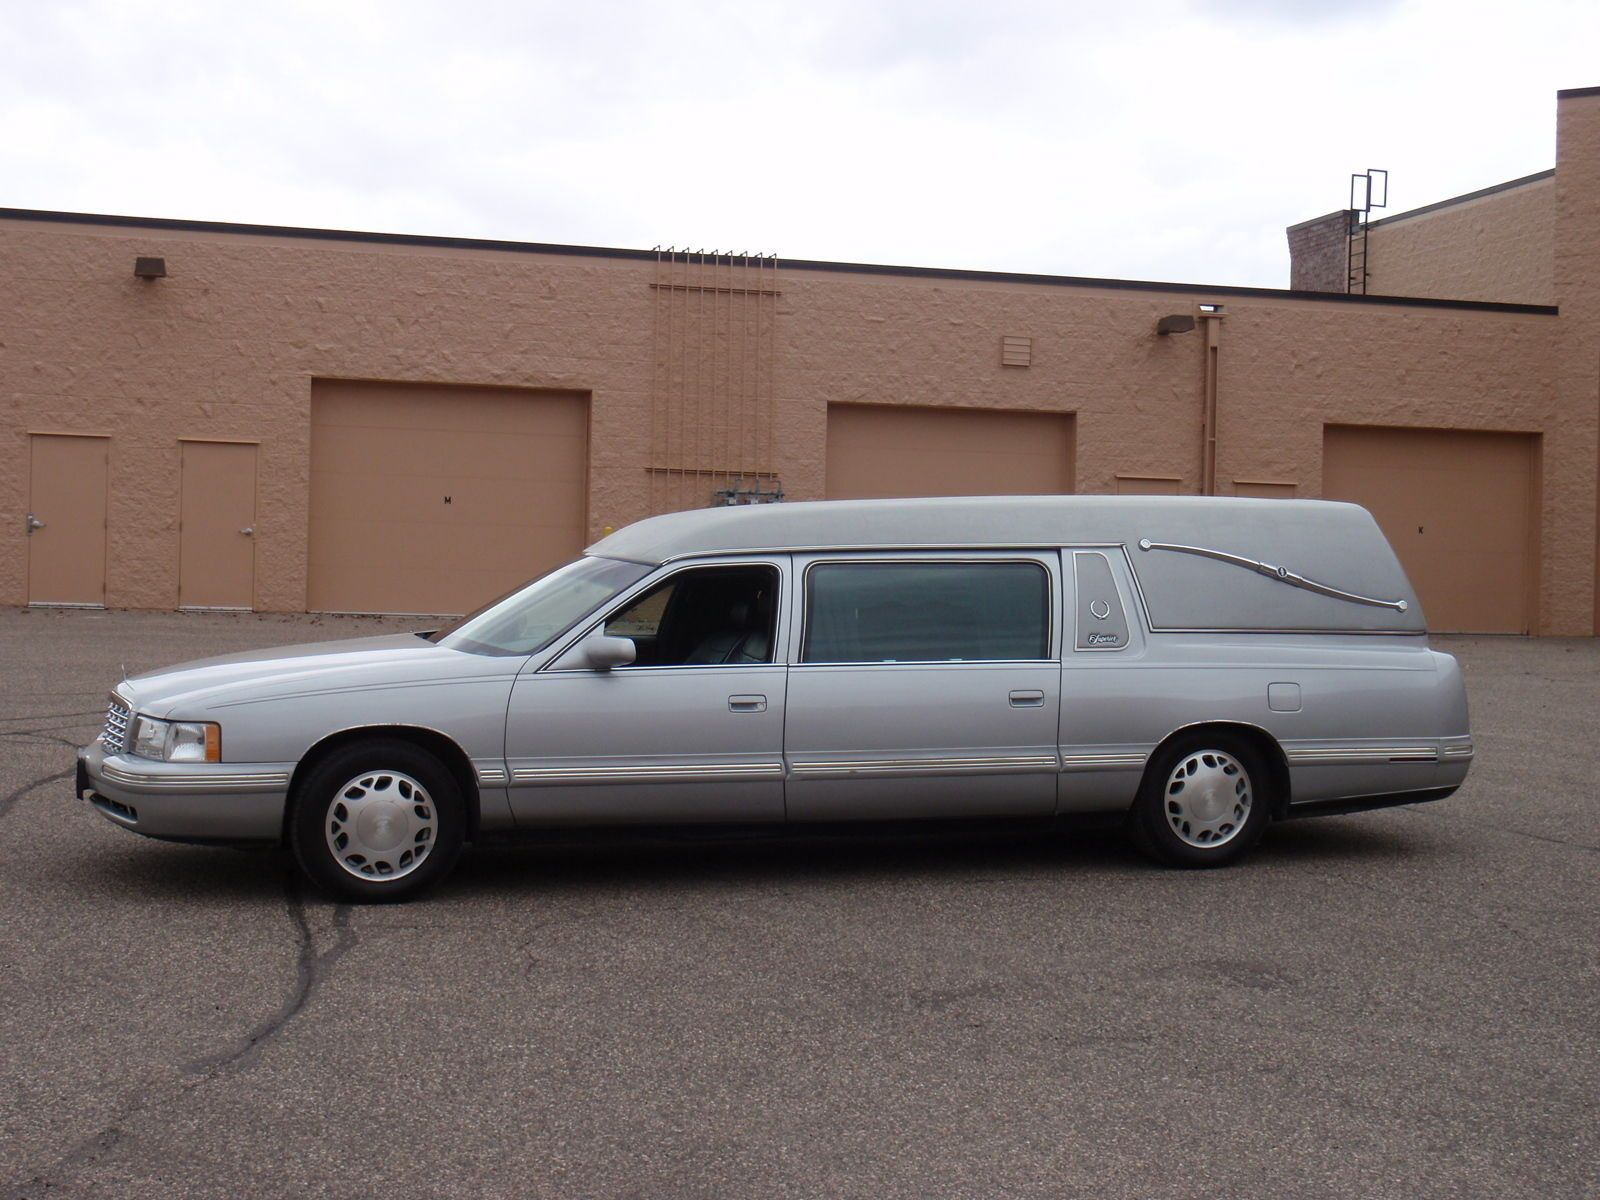 Blue 1998 cadillac deville superior statesman hearse funeral coach for sale